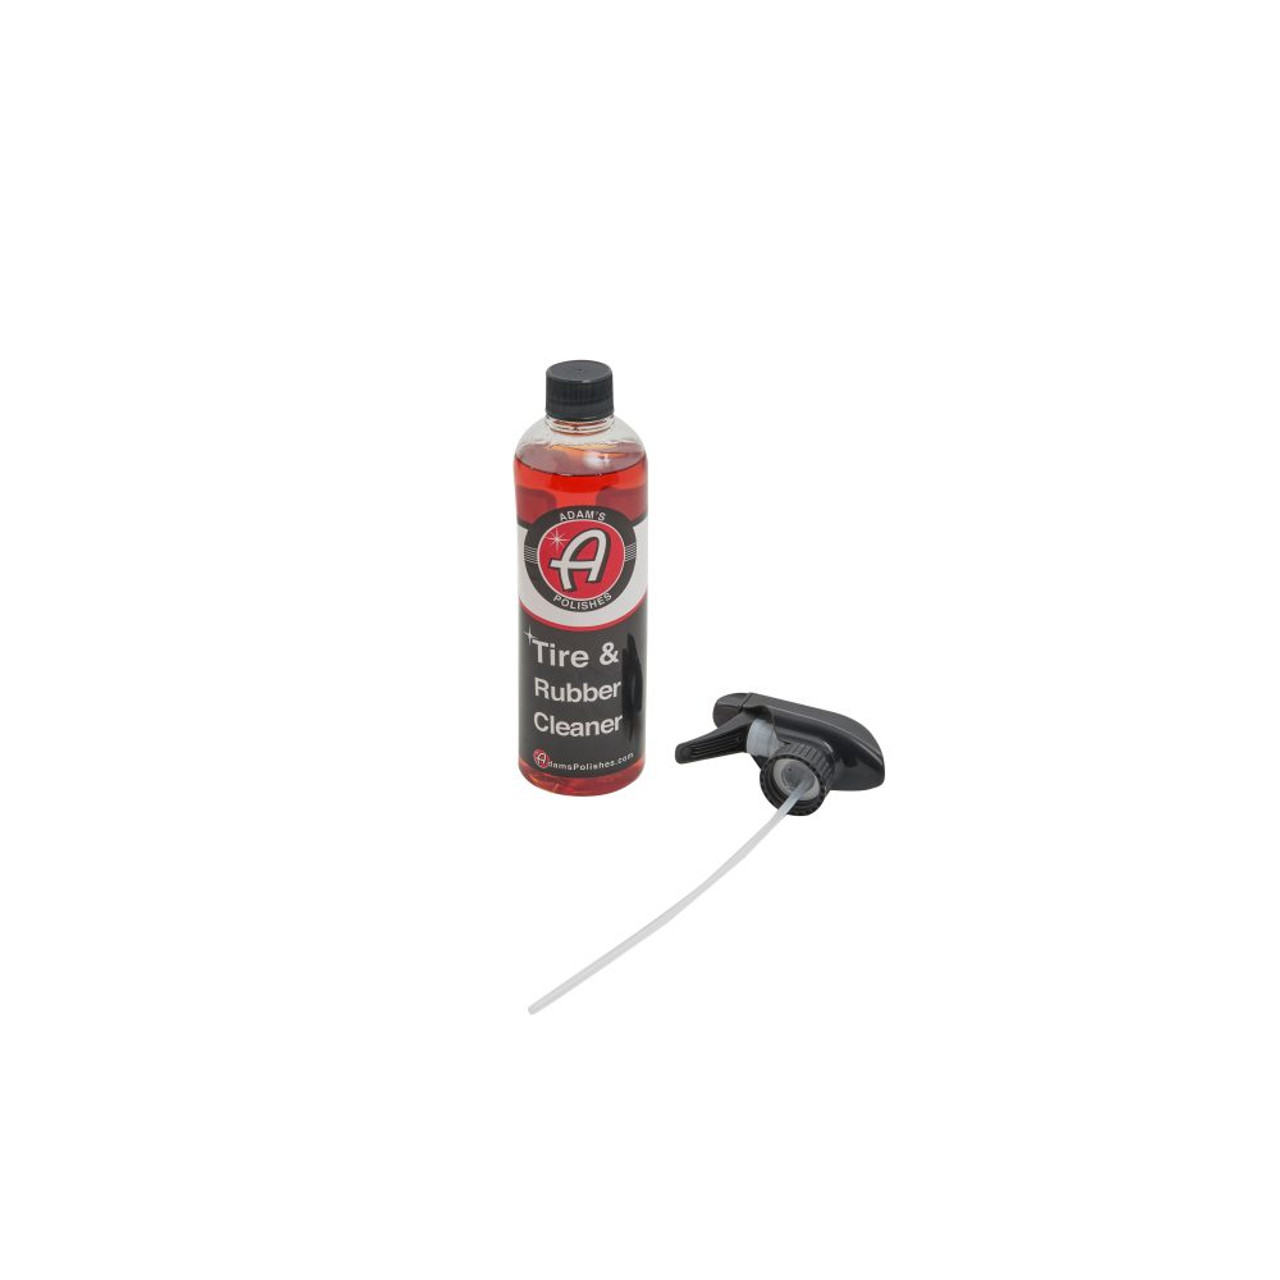 Tire and Rubber Cleaner by Adam's Polishes